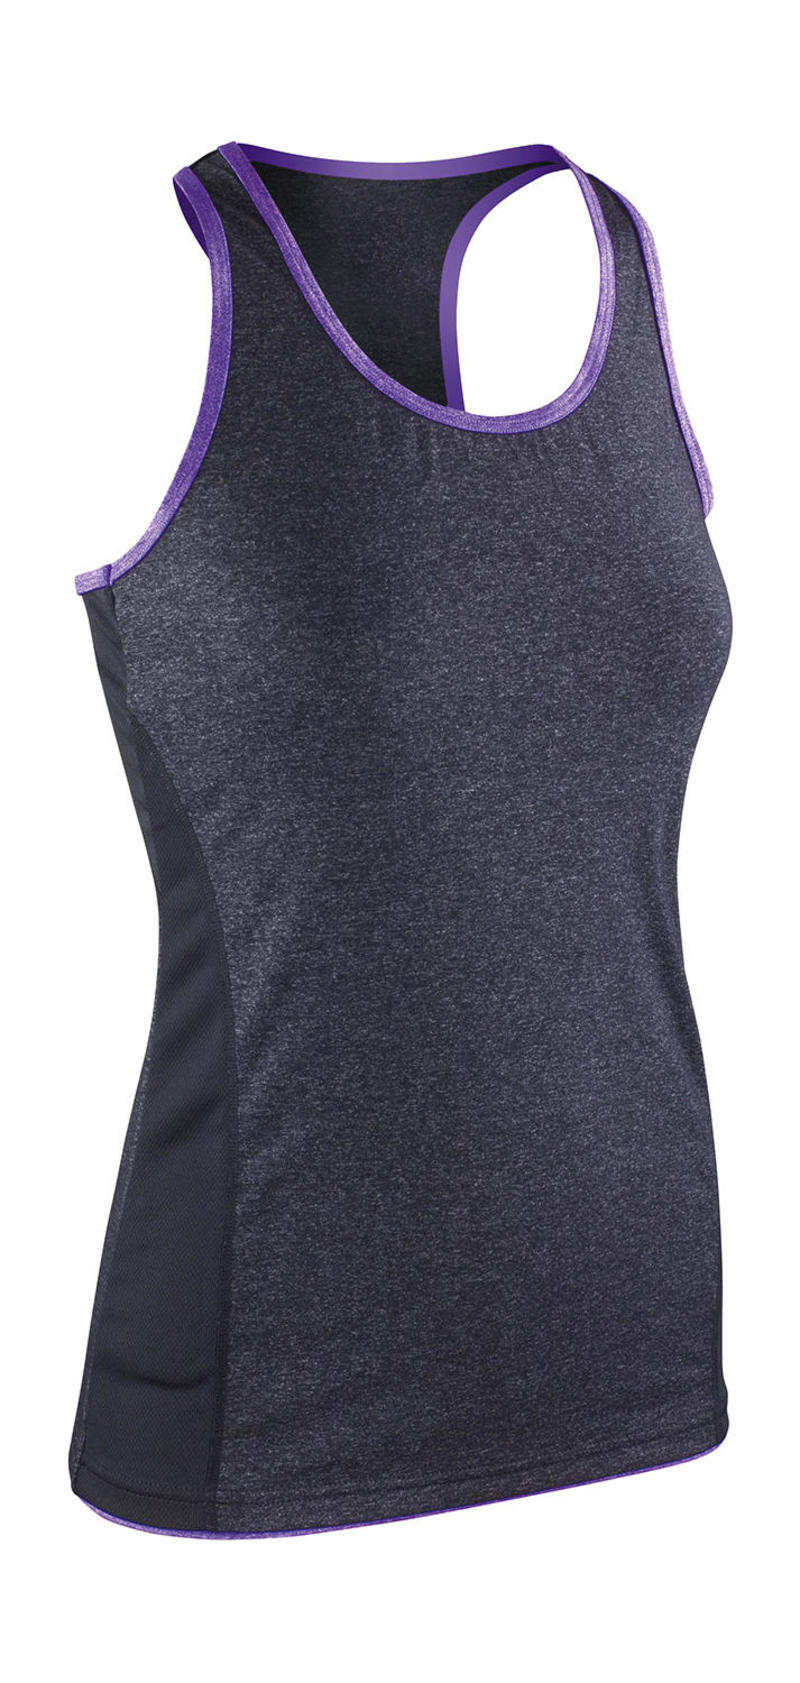 Fitness Women's Stringer Back Marl Top